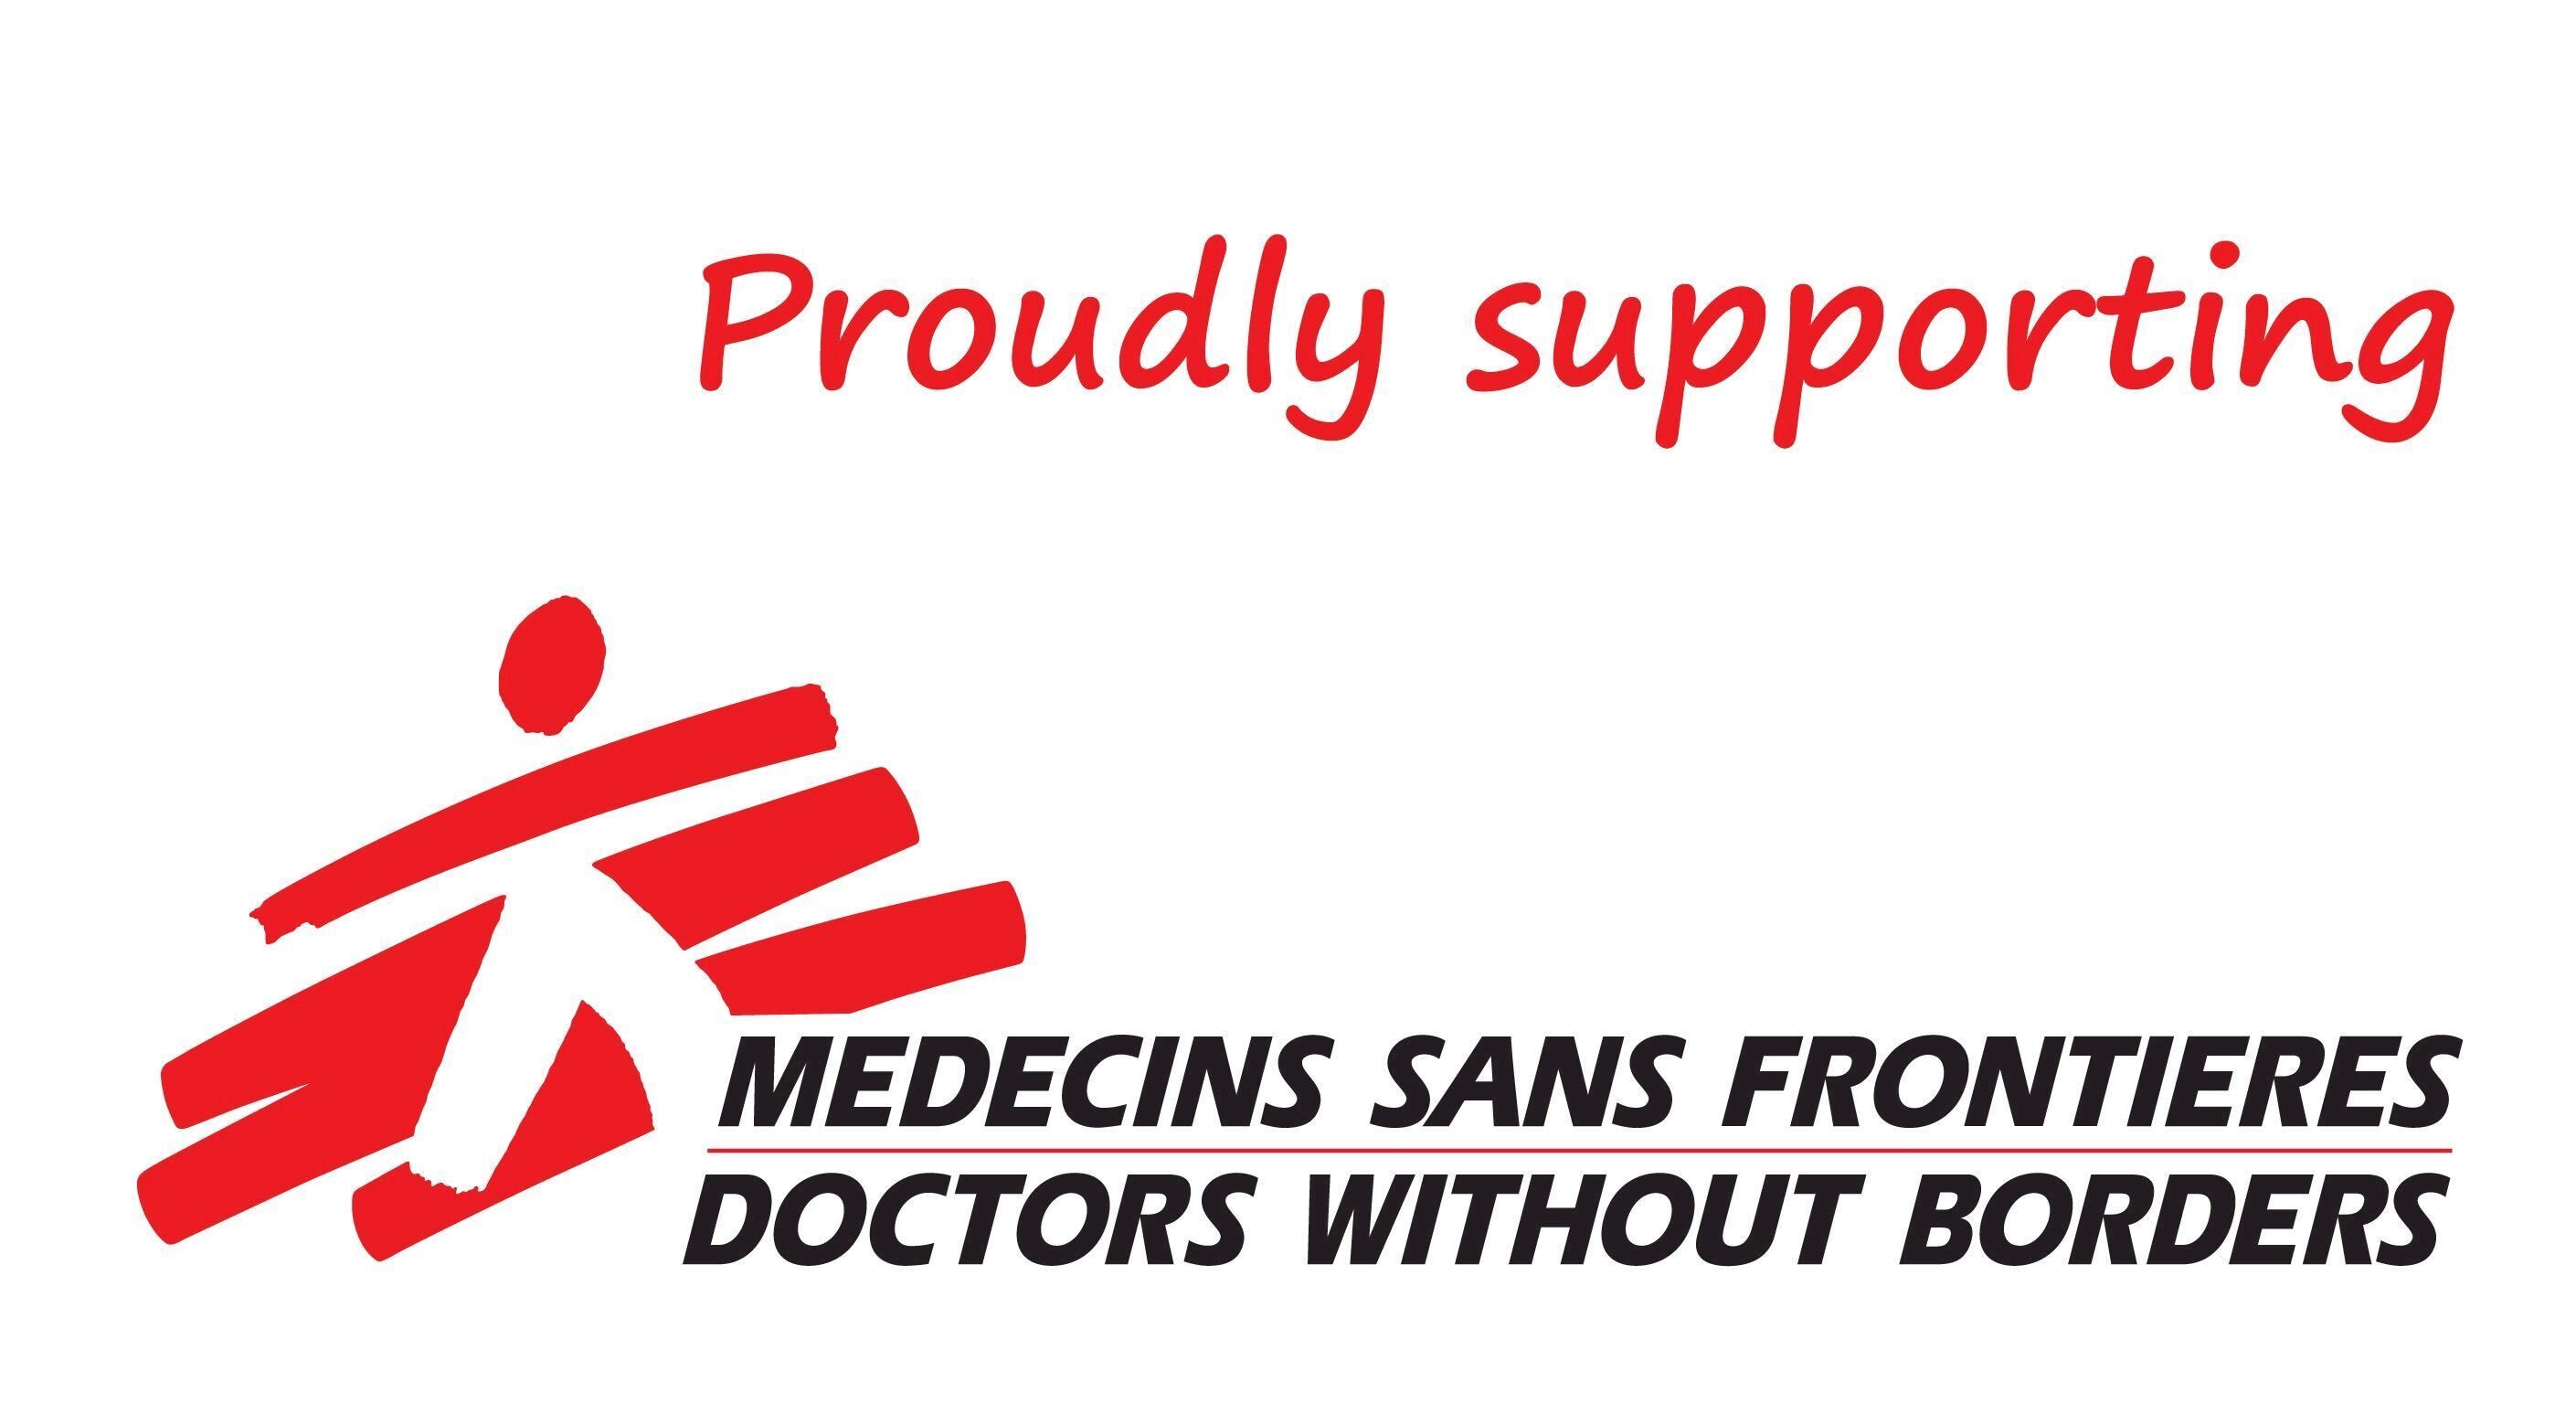 Interview with MSF (Médecins Sans Frontières / Doctors Without Borders)